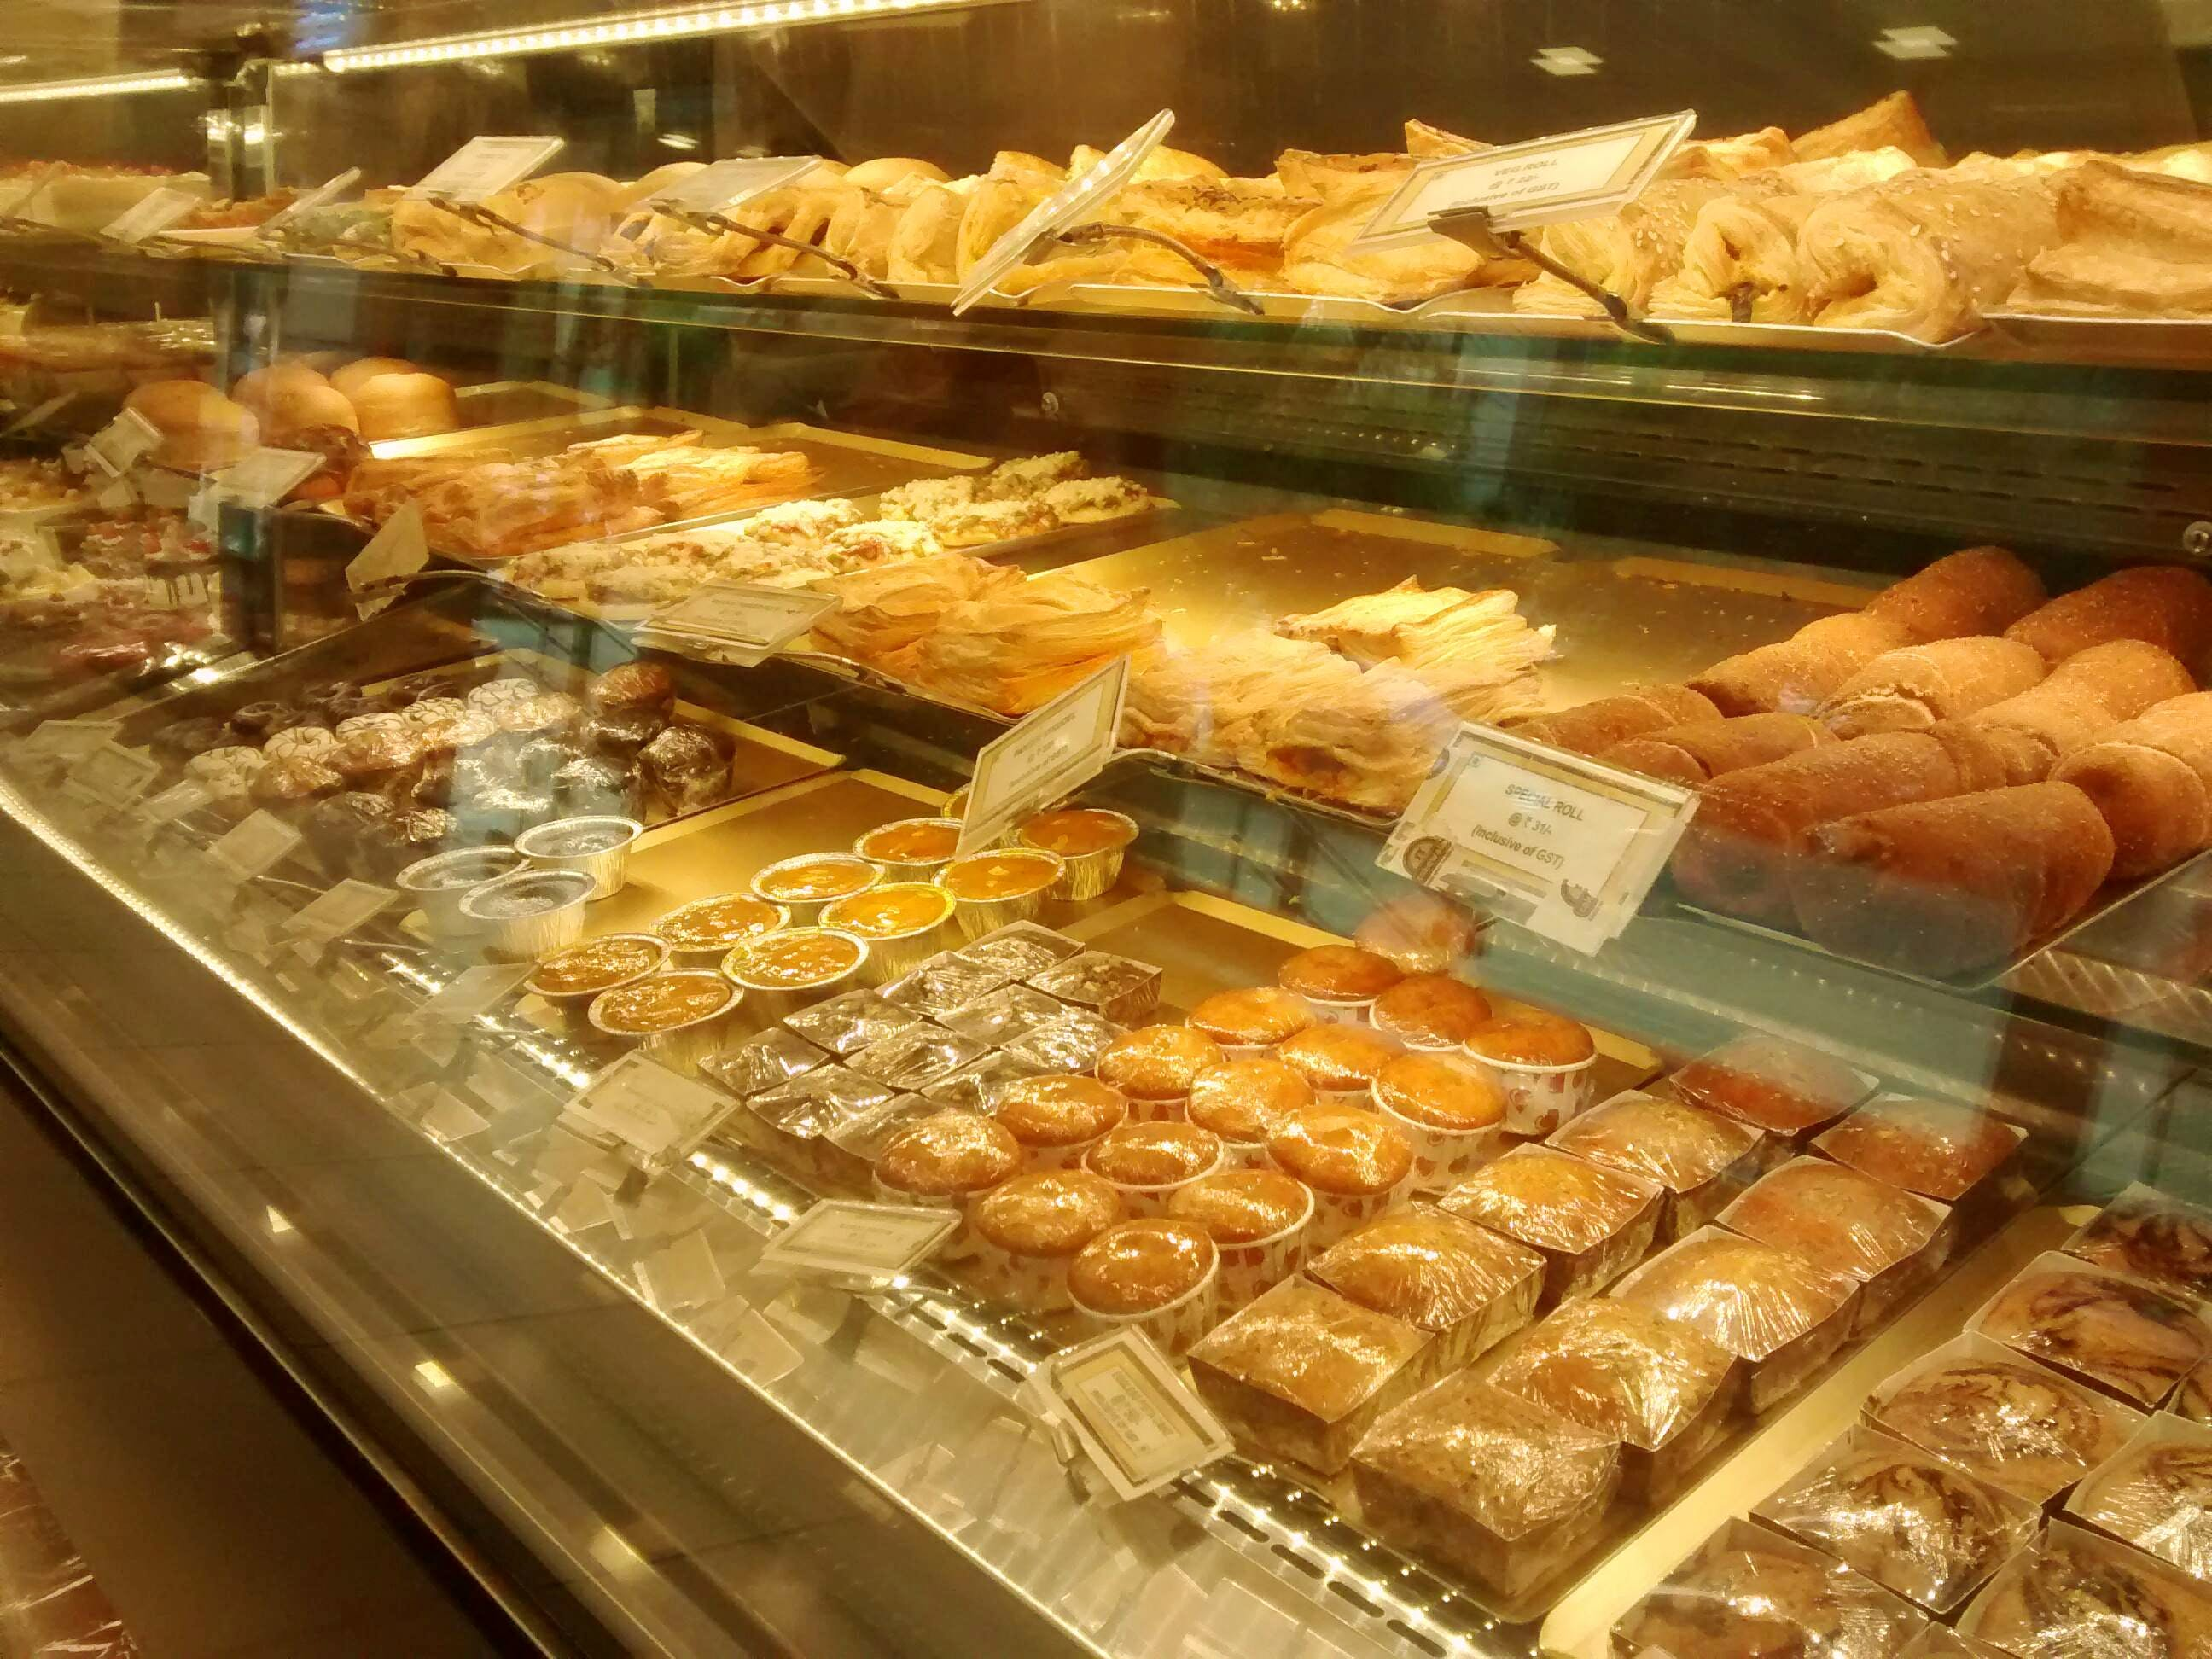 Bakery,Food,Pâtisserie,Cuisine,Dish,Danish pastry,Delicacy,Pastry,Ingredient,Cuban pastry